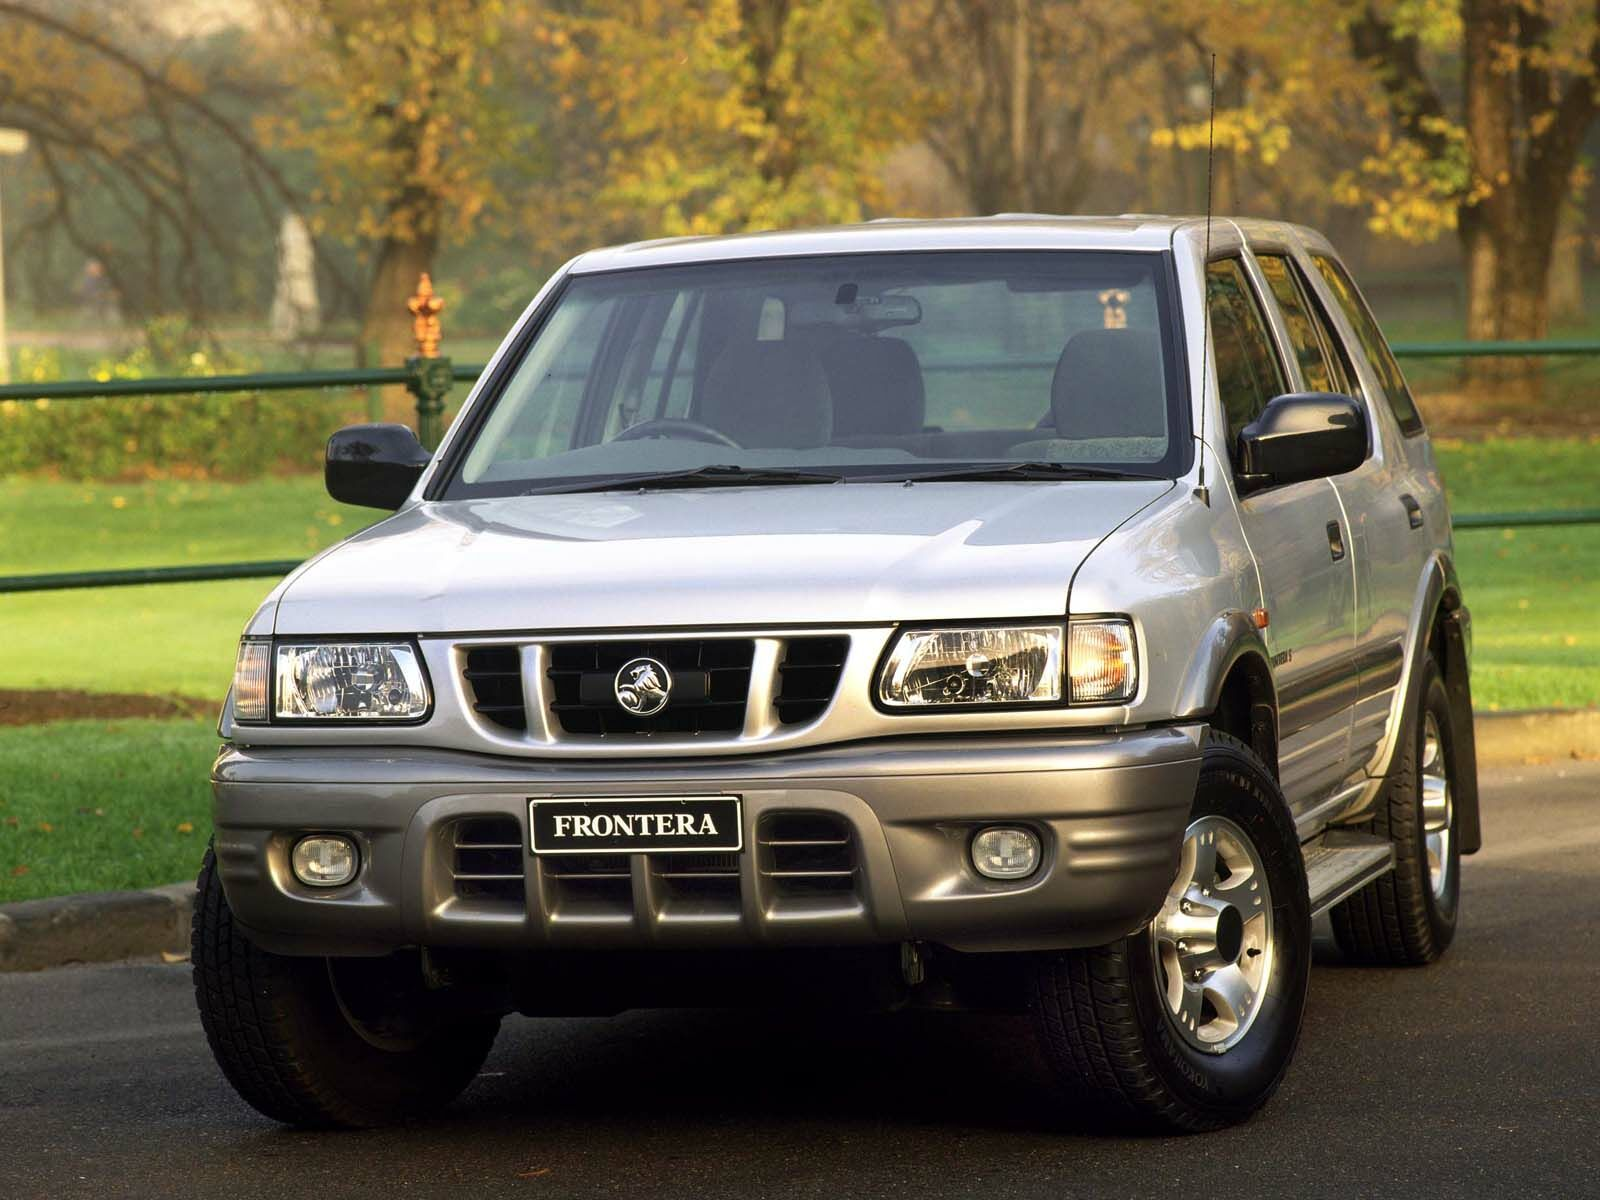 holden frontera images #14